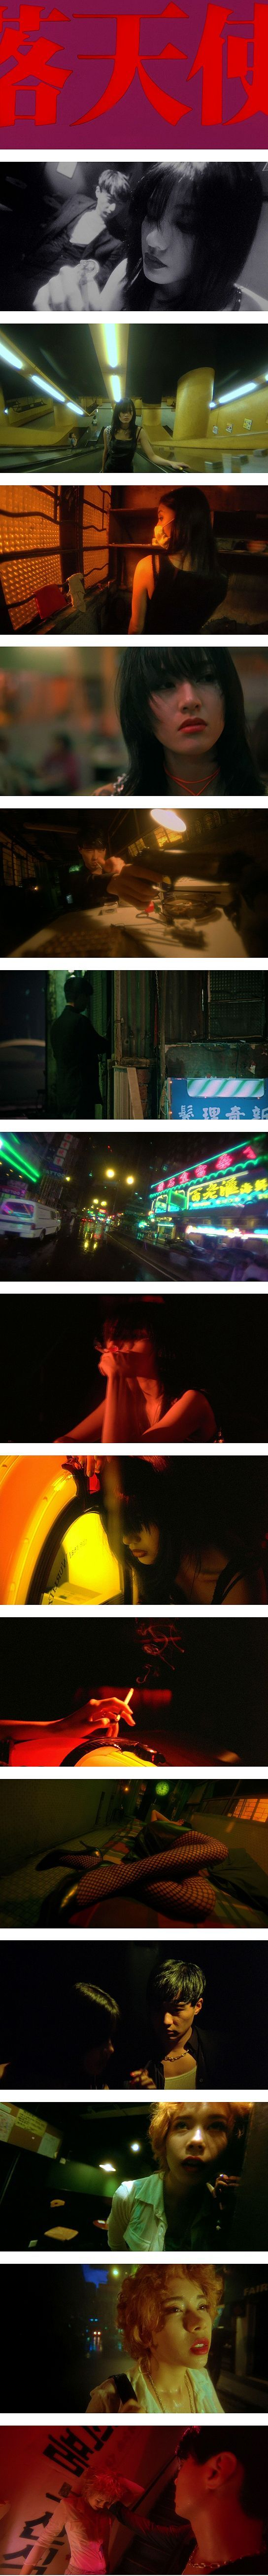 """""""Fallen Angels"""" (1995) by Wong Kar-Wai (Hong Kong) with Christopher Doyle as the director of photo:"""